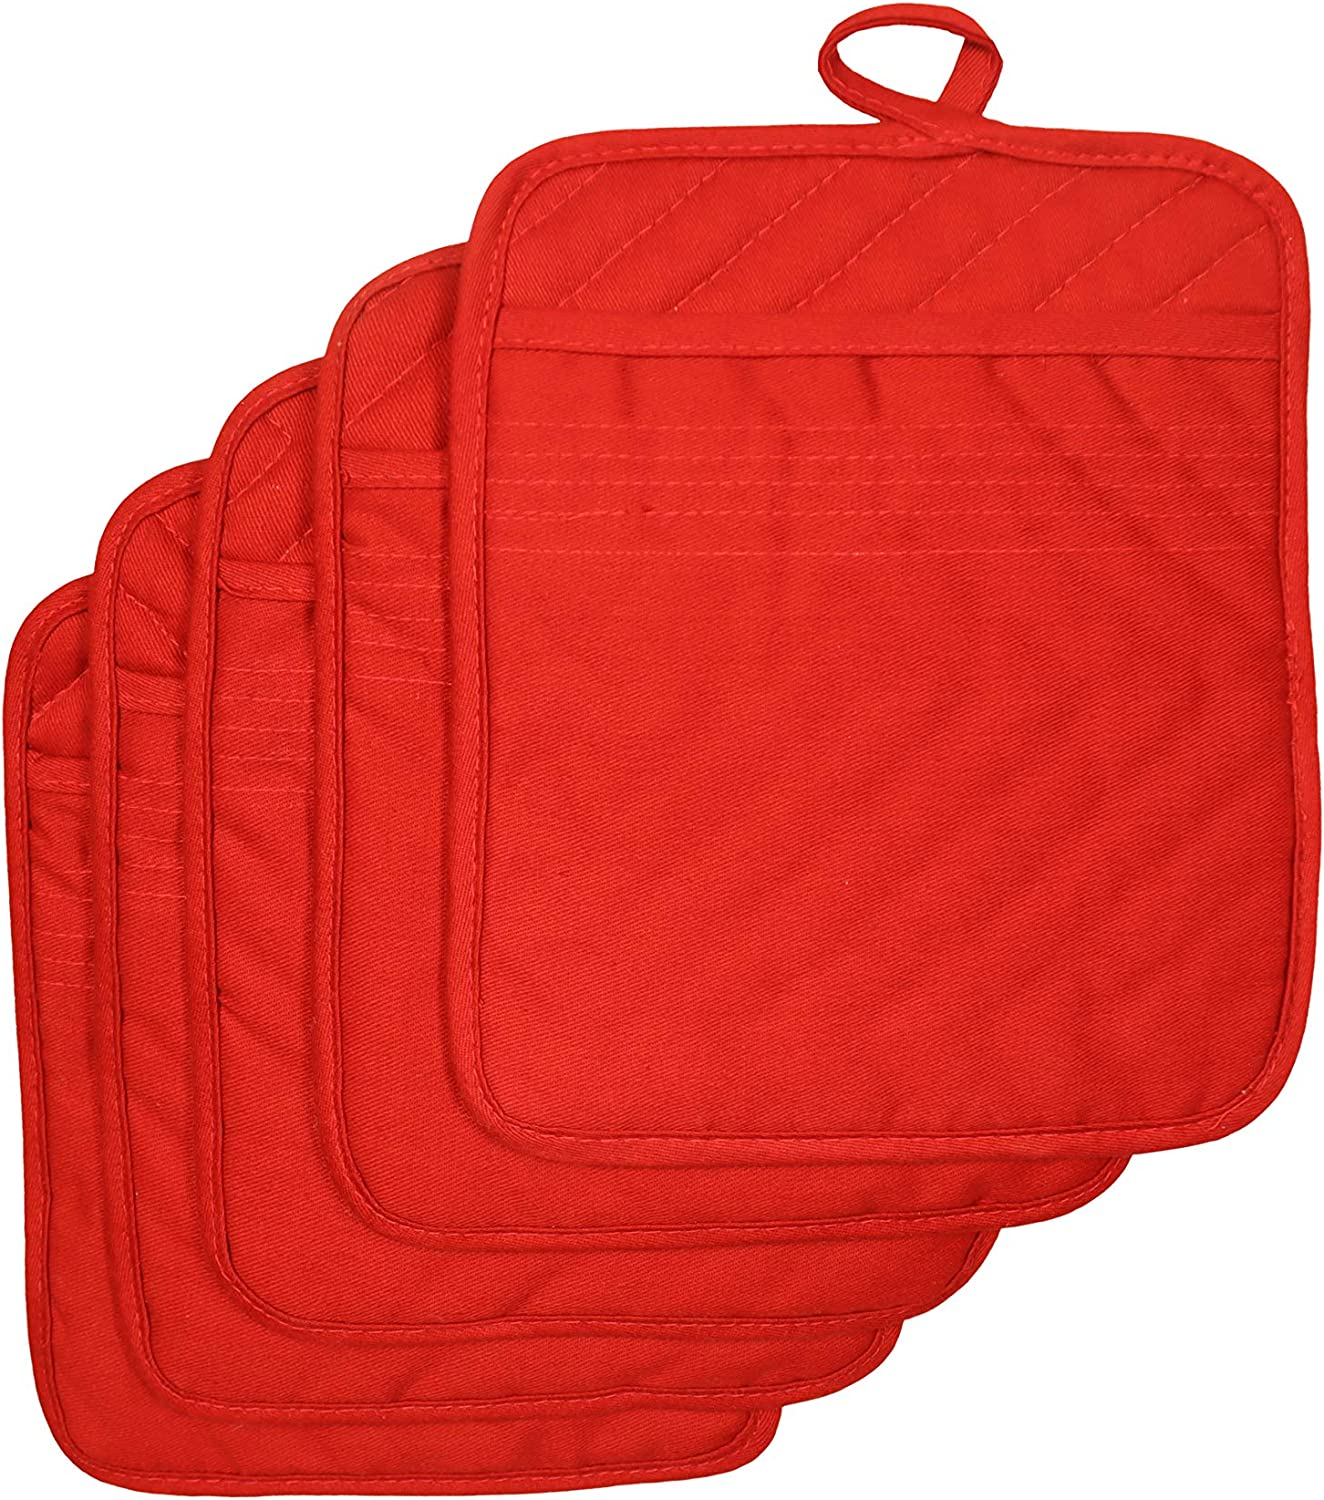 """VEIKERY Oven Pot Holder with Pocket 100% Cotton Heat Resistant Coaster Potholder Kitchen Hot Pad Oven Mitts for Cooking and Baking Square 7""""x9"""" (Red, 5)"""